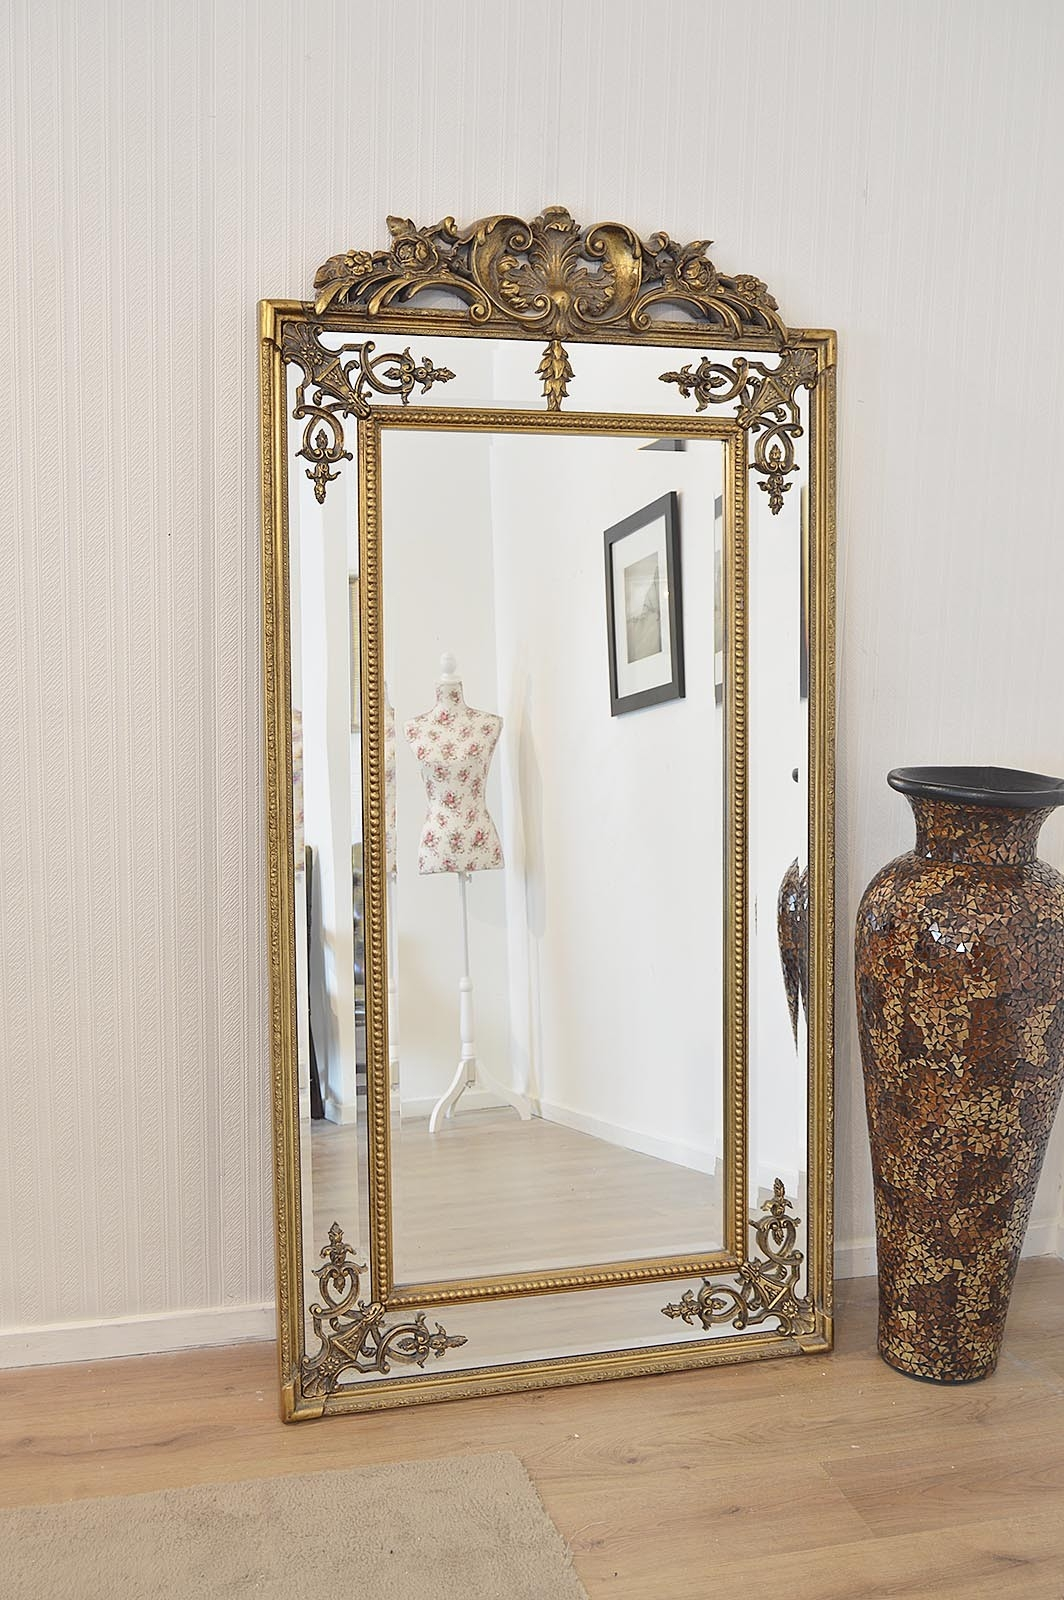 Venetianframeless Mirrors Category Regarding Large Ornate Mirrors For Sale (Image 15 of 15)